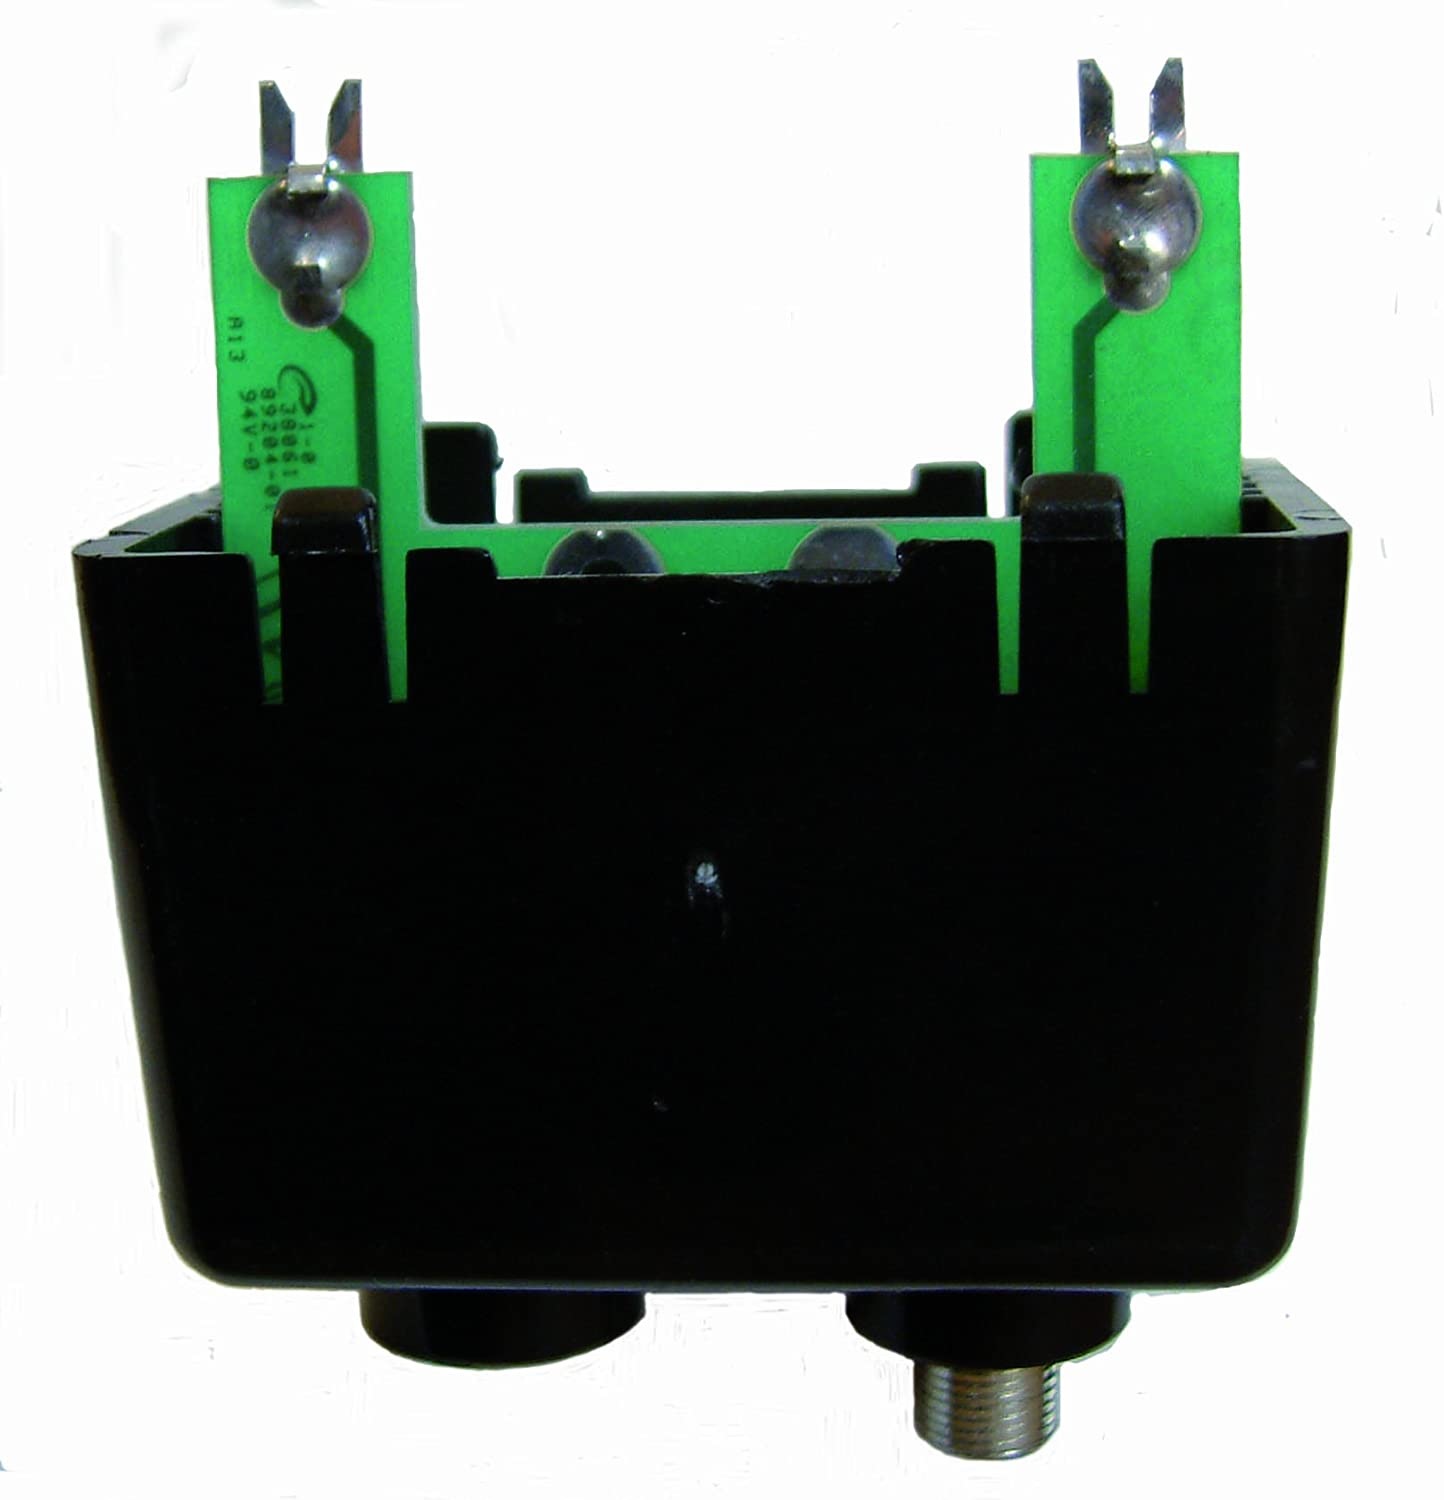 Winegard CB-8269 Coupler Board Housing for Platinum Max 54% OFF and 2021new shipping free shipping